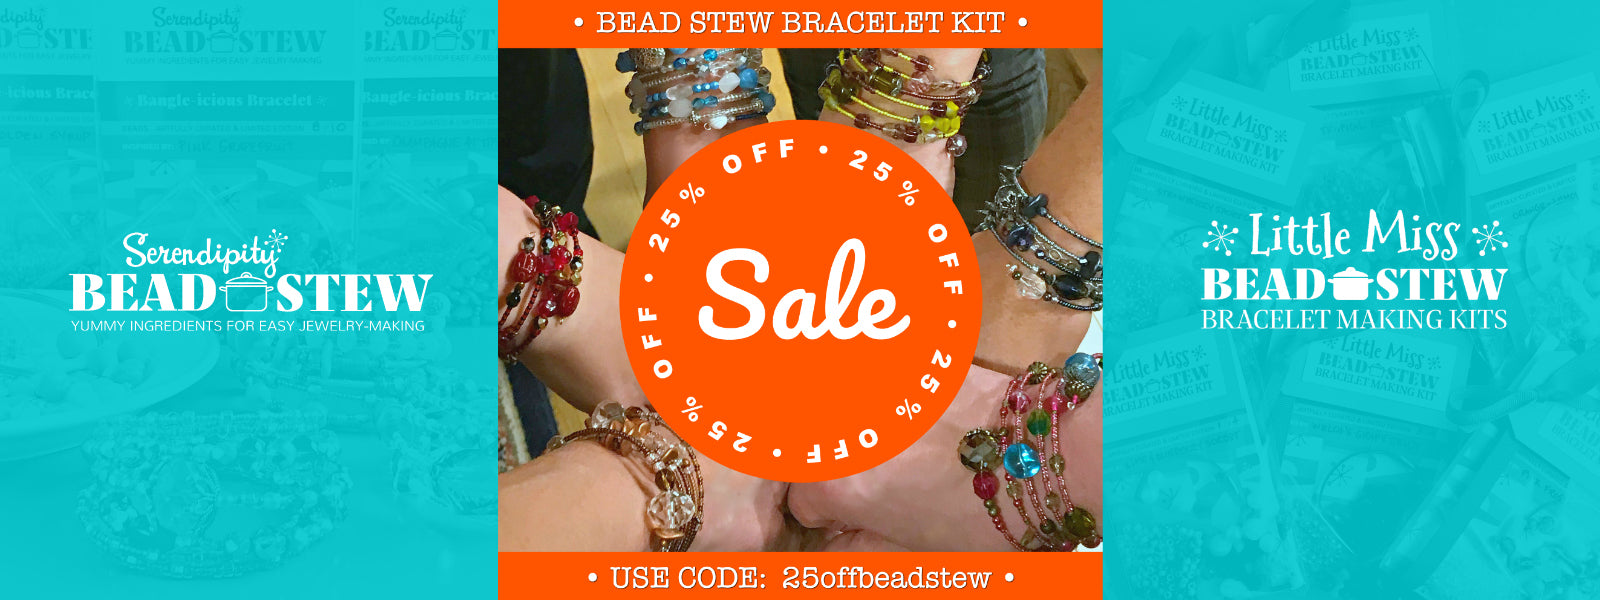 Suzie Q Studio's Serendipity BEAD STEW DIY EASY BANGLE STYLE BRACELET MAKING KITS are Limited Edition collections of artfully curated premium quality beads and components for you to make a one-of-a-kind bracelet. No experience necessary. Limited time offer, use promo code for 25% OFF.